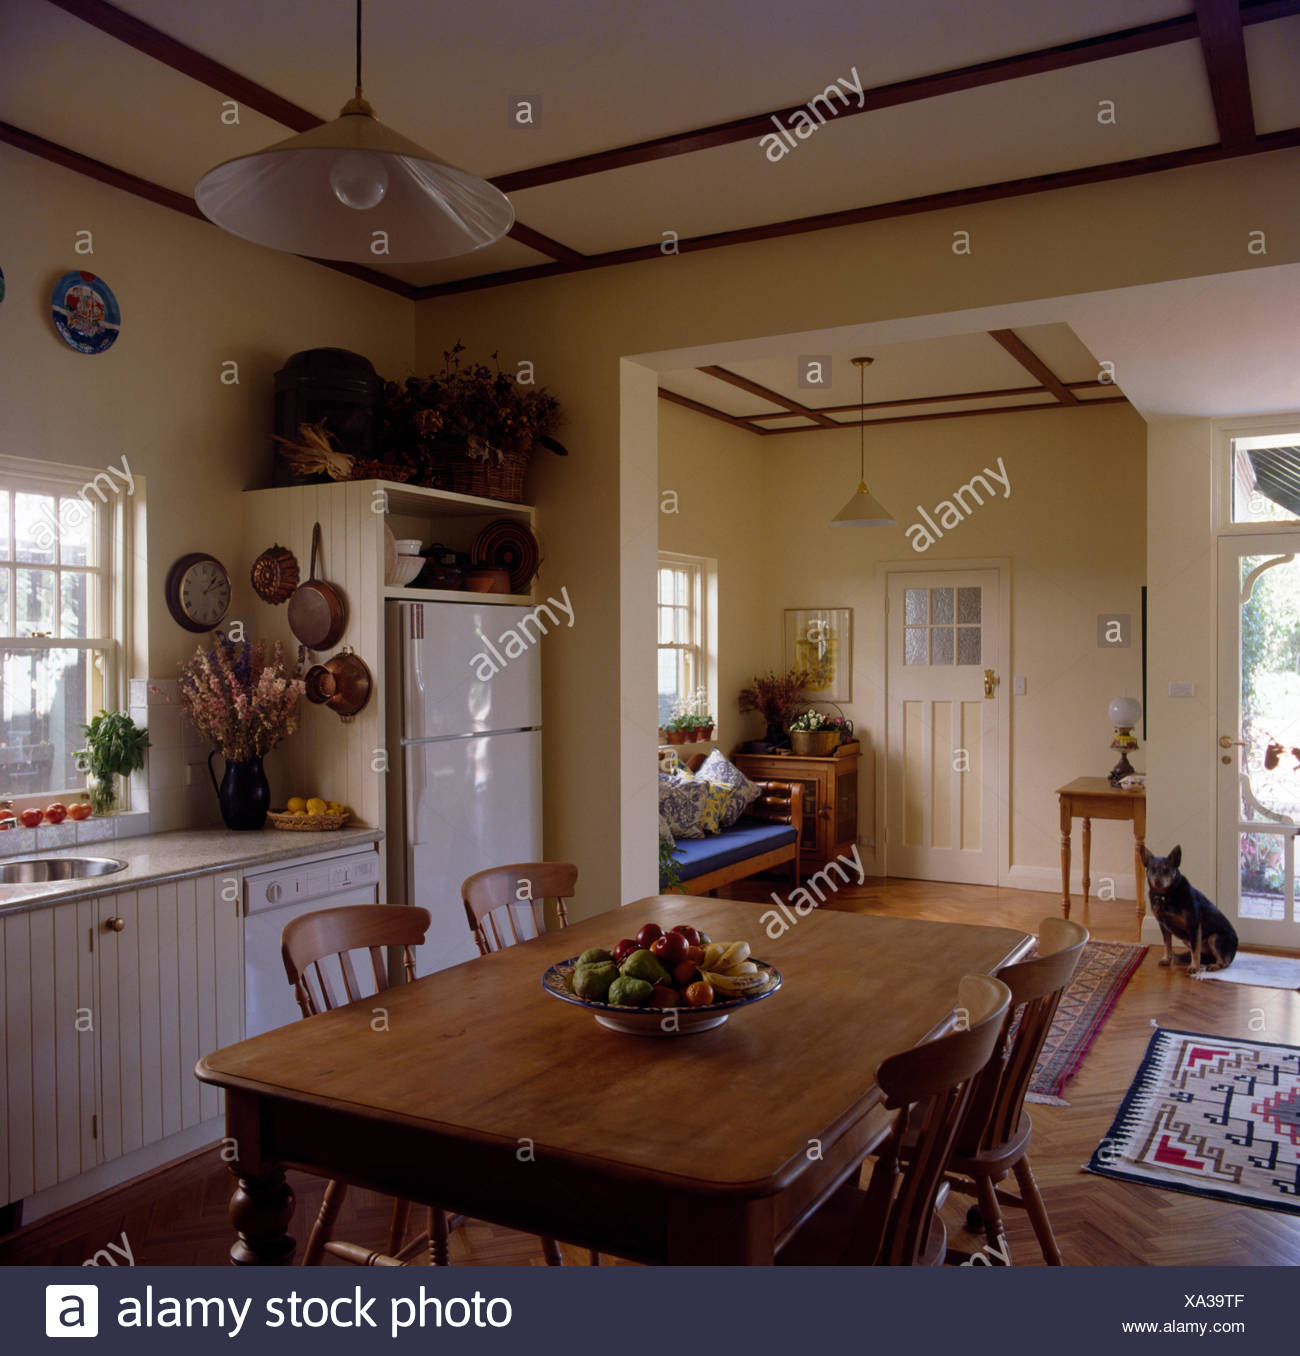 Vintage Pine Table And Chairs In An Open Plan Traditional Kitchen With A Dog Sitting Beside The Front Door Stock Photo Alamy